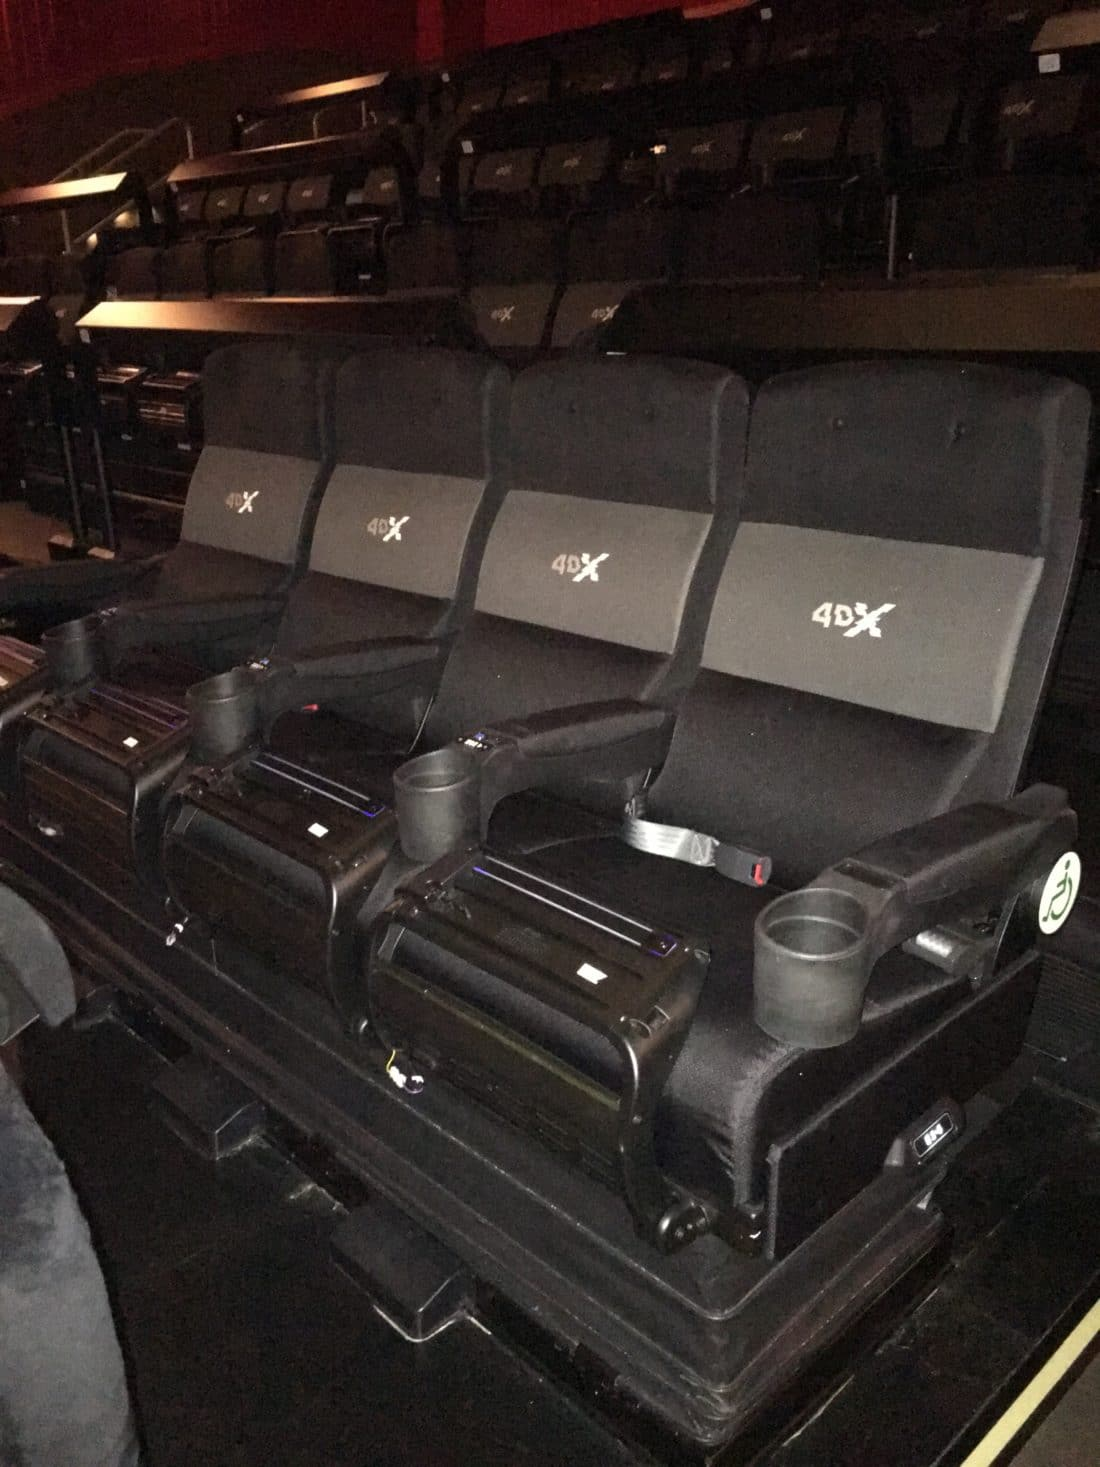 Regal CInema 4dx Seats. Read about why everything is awesome with the new Regal Cinema 4DX Expierence for The LEGO Movie 2: The 2nd Part. Full review with photos.